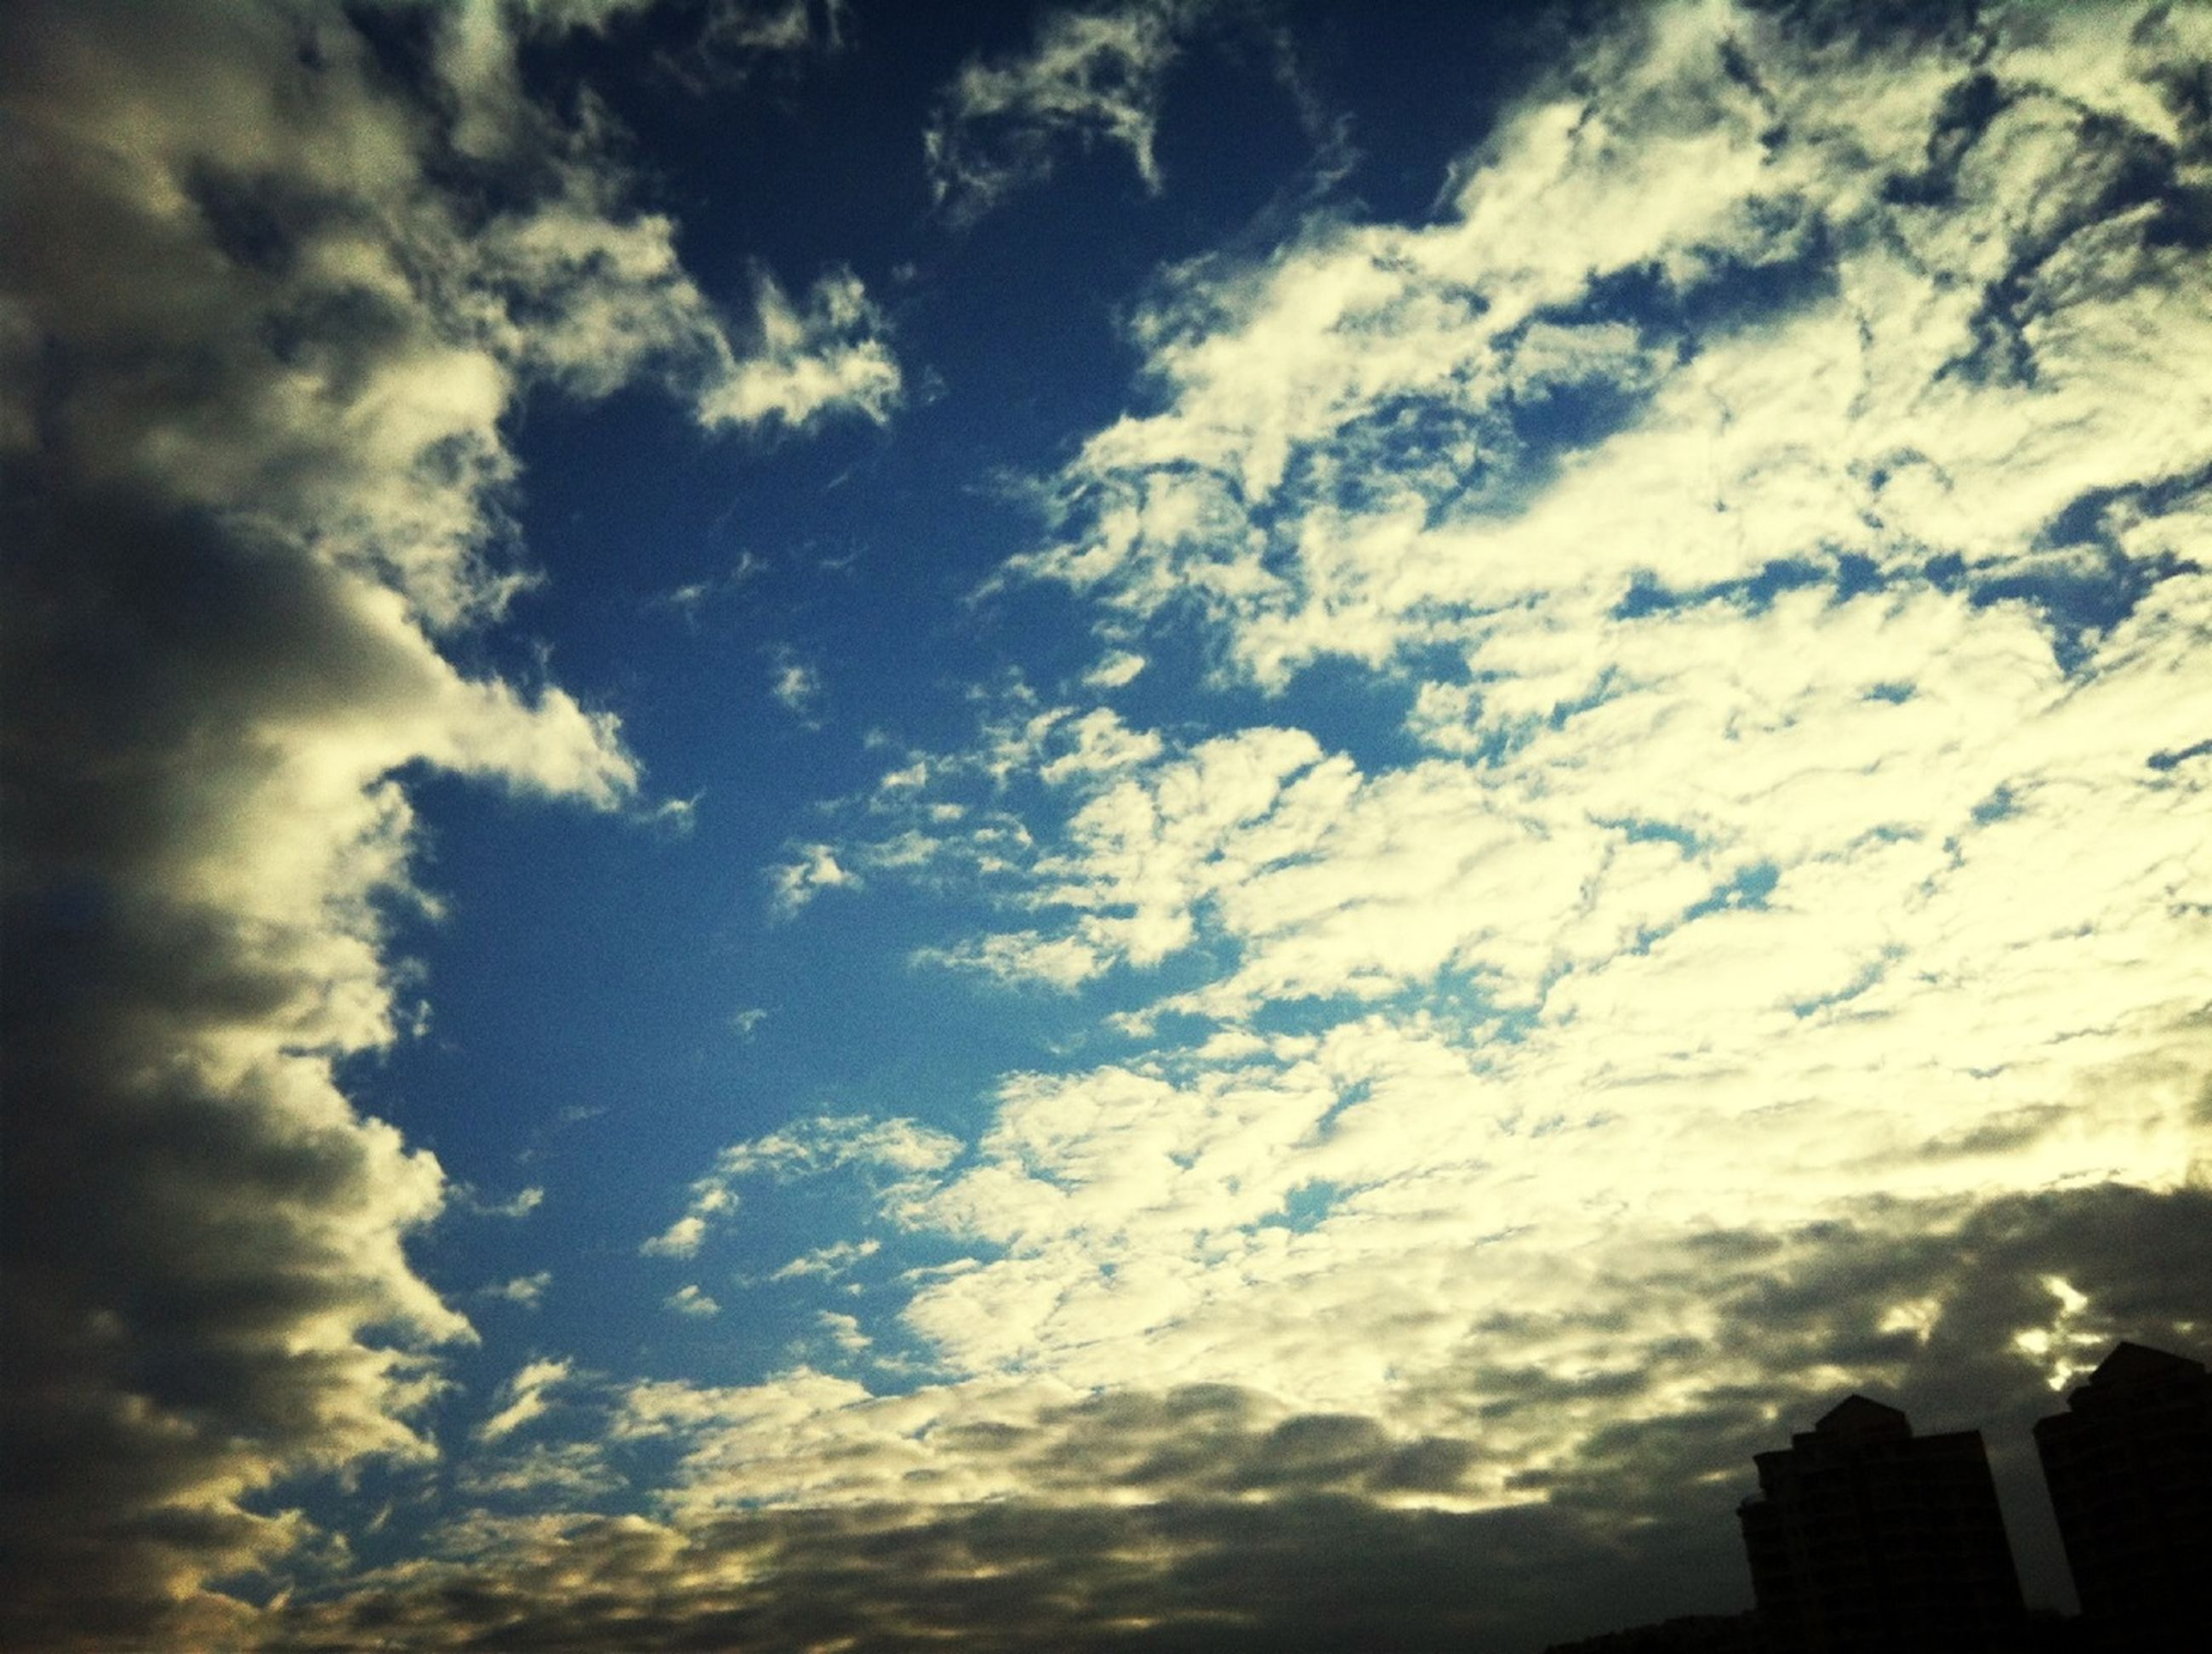 low angle view, sky, cloud - sky, cloudy, cloud, building exterior, beauty in nature, nature, silhouette, built structure, architecture, cloudscape, scenics, high section, weather, outdoors, tranquility, no people, sunset, overcast